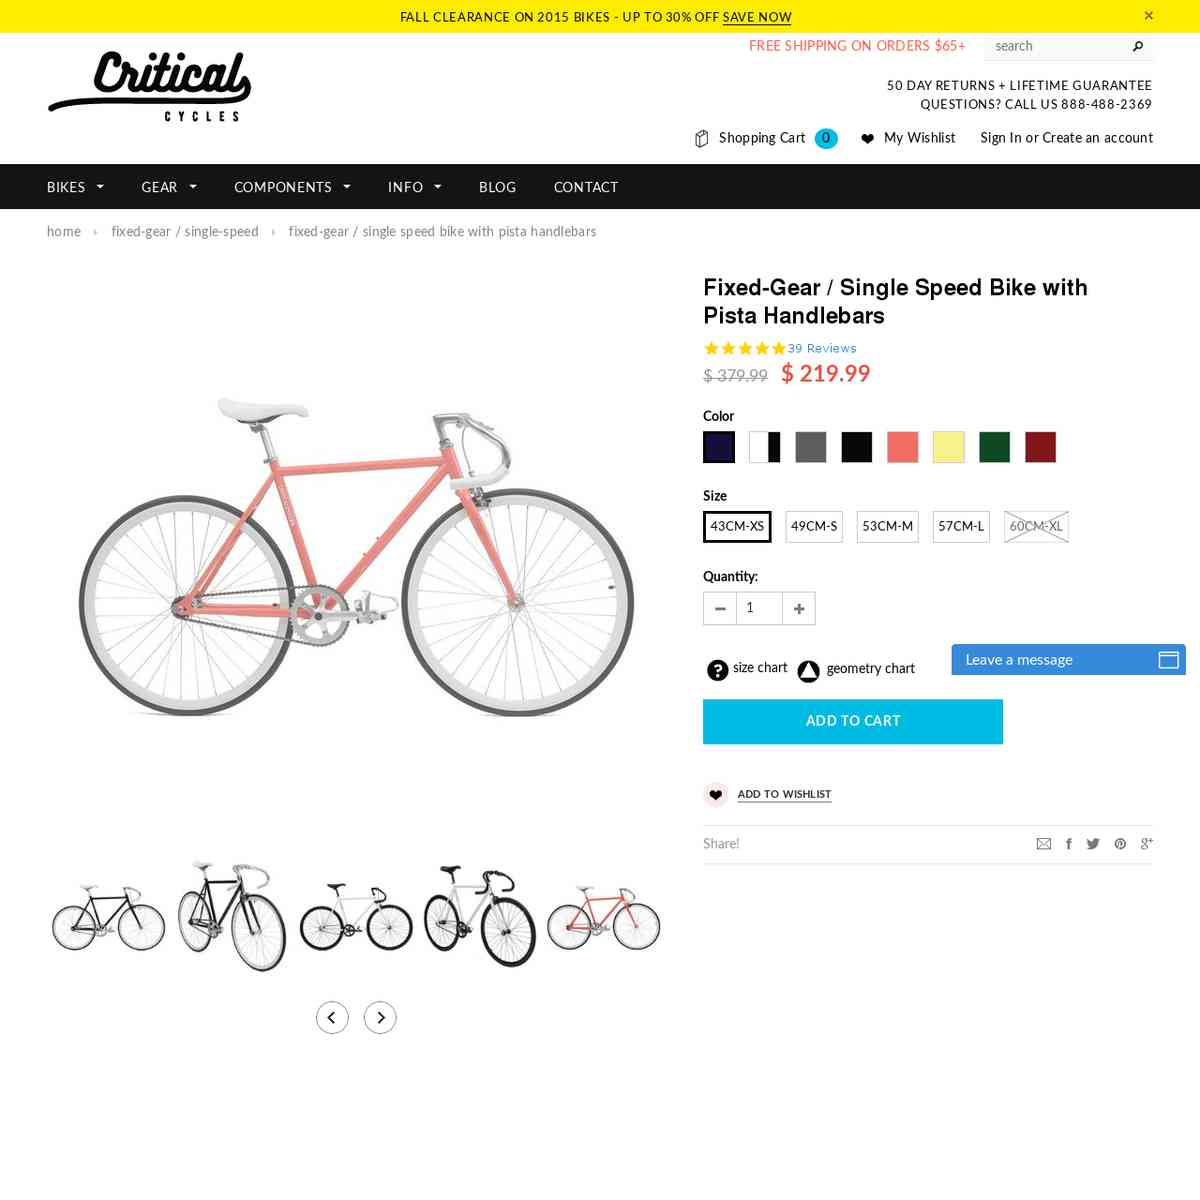 Fixed-Gear / Single-Speed Bikes with Pista Handlebars | Critical Cycles